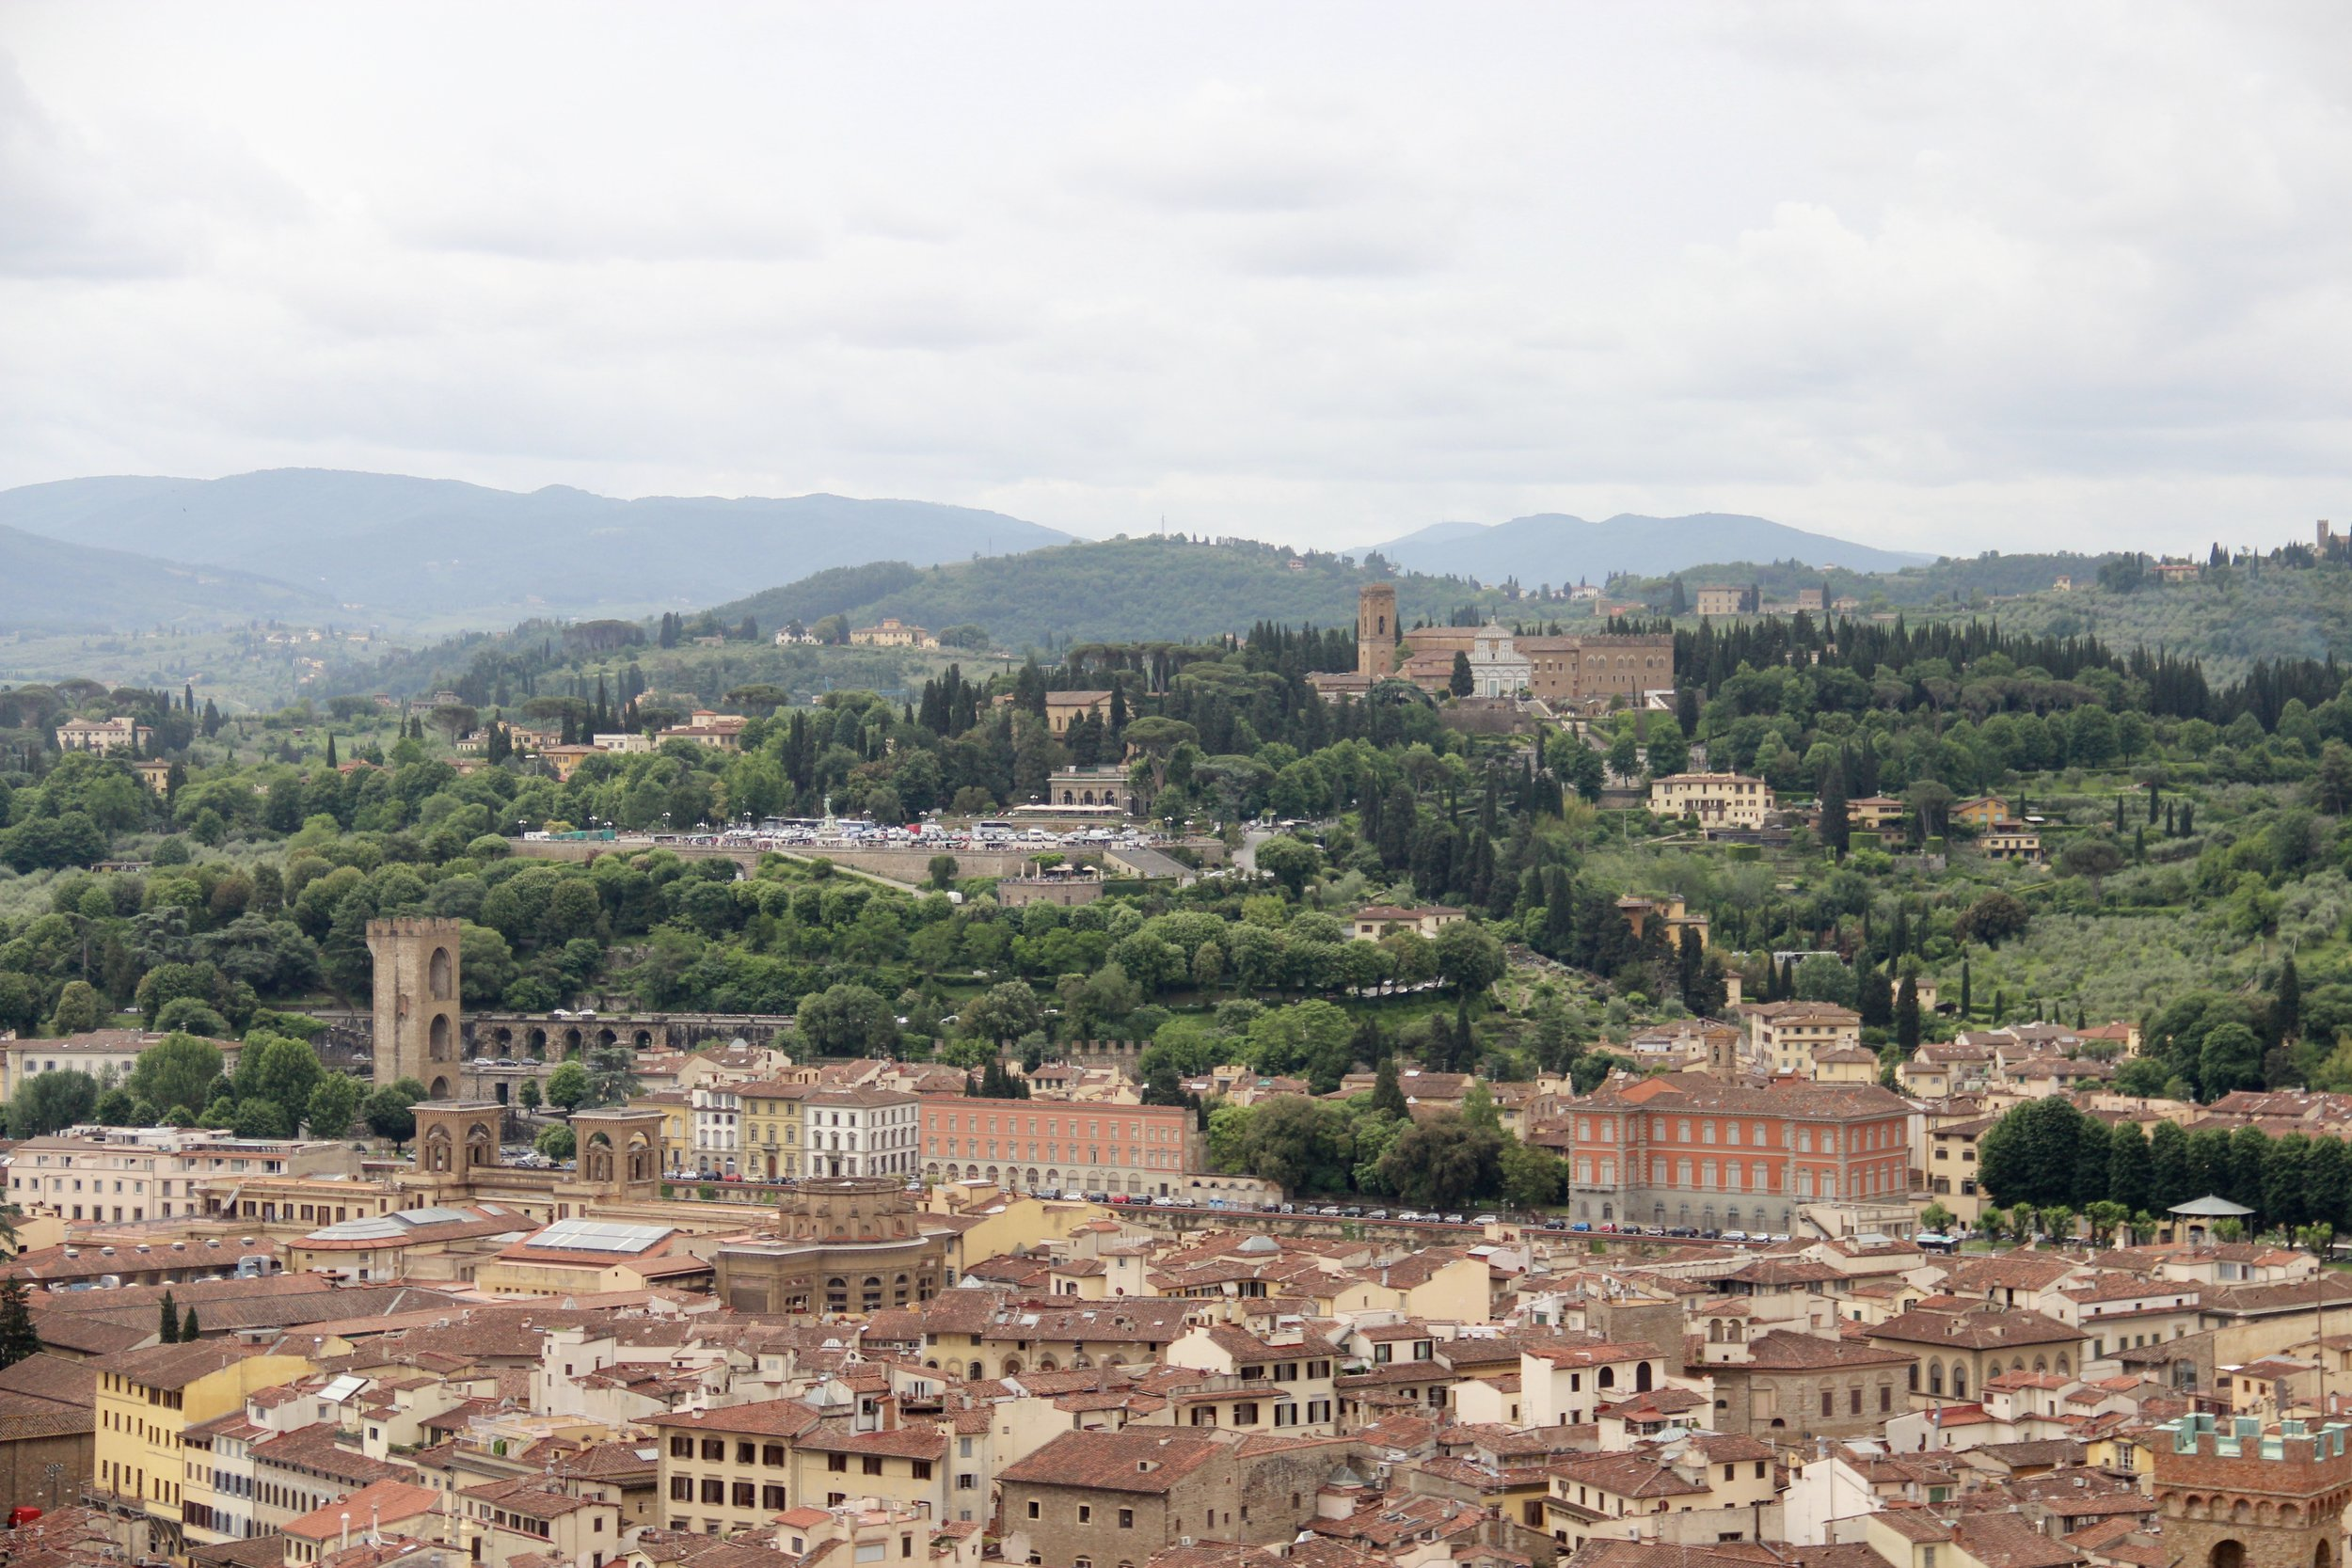 On the hill is Piazzale Michelangelo, a great place to get a view of Florence. See those stairs near the parking lot in the center? We grabbed a beer and sat there post-Duomo climb.